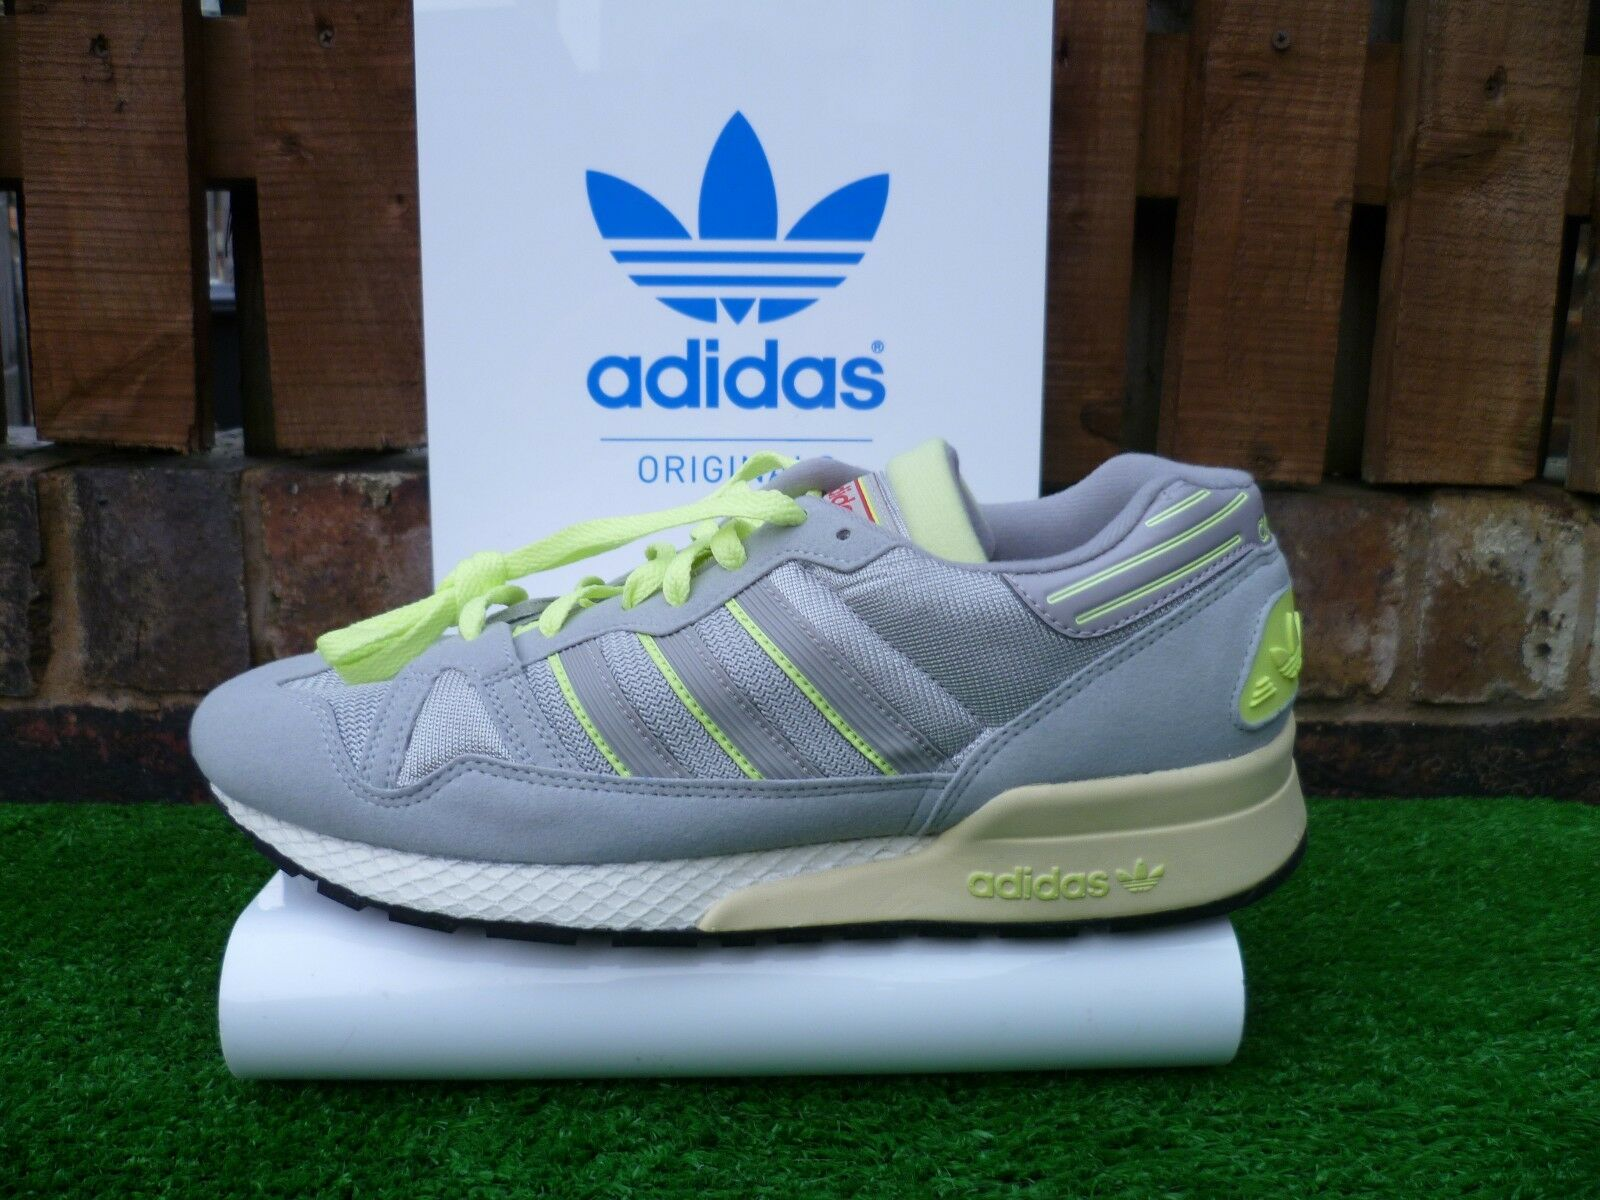 Adidas ZX 710 UK8.5  80s casuals UK8.5 710  BNWT 2013 6 7 5 00 VERY RARE COLOURWAY LOOK f93974